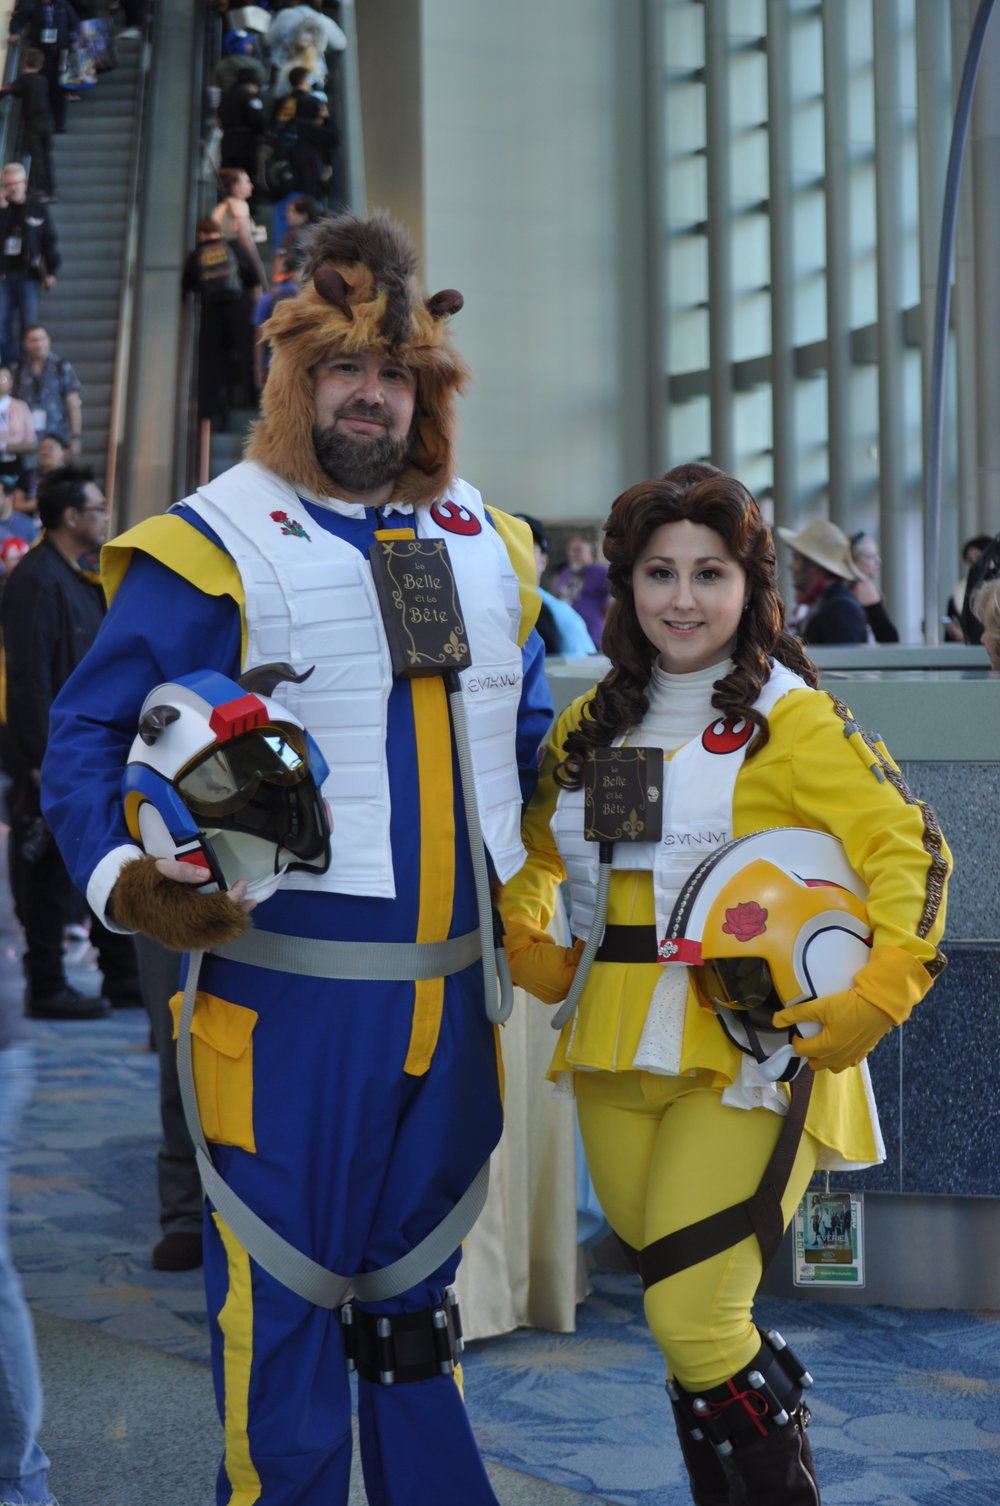 @starryandmooncosplay  took an awesome rendition of their Beauty and the Beast cosplays with a Star Wars theme!